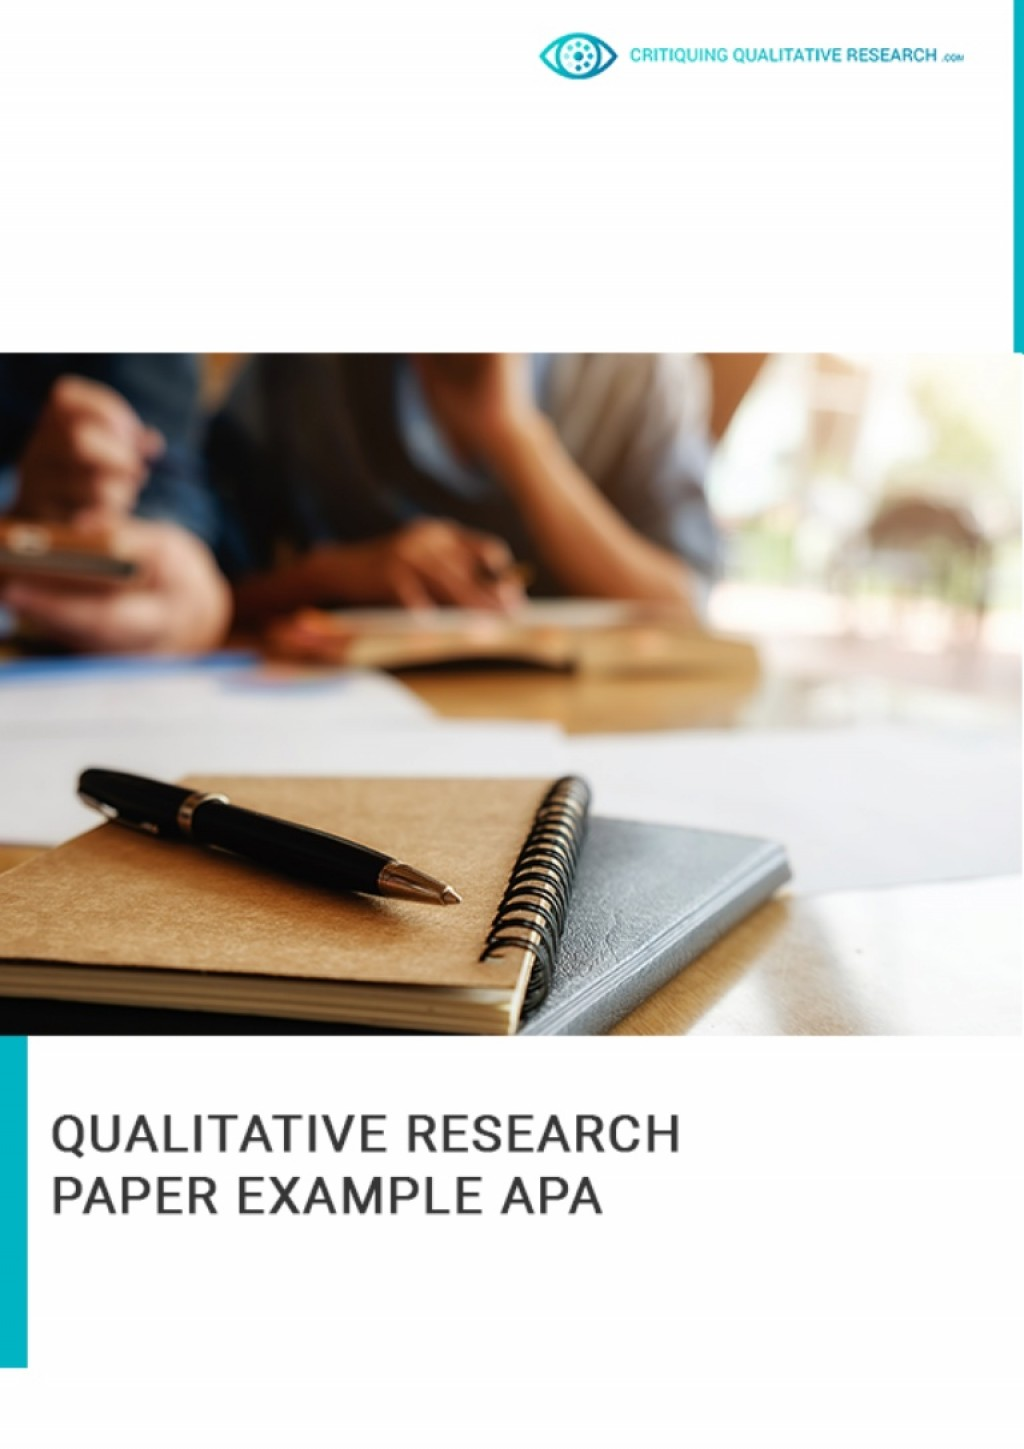 005 Apa Qualitative Research Paper Example Professional Thumbnail Unbelievable Format Large